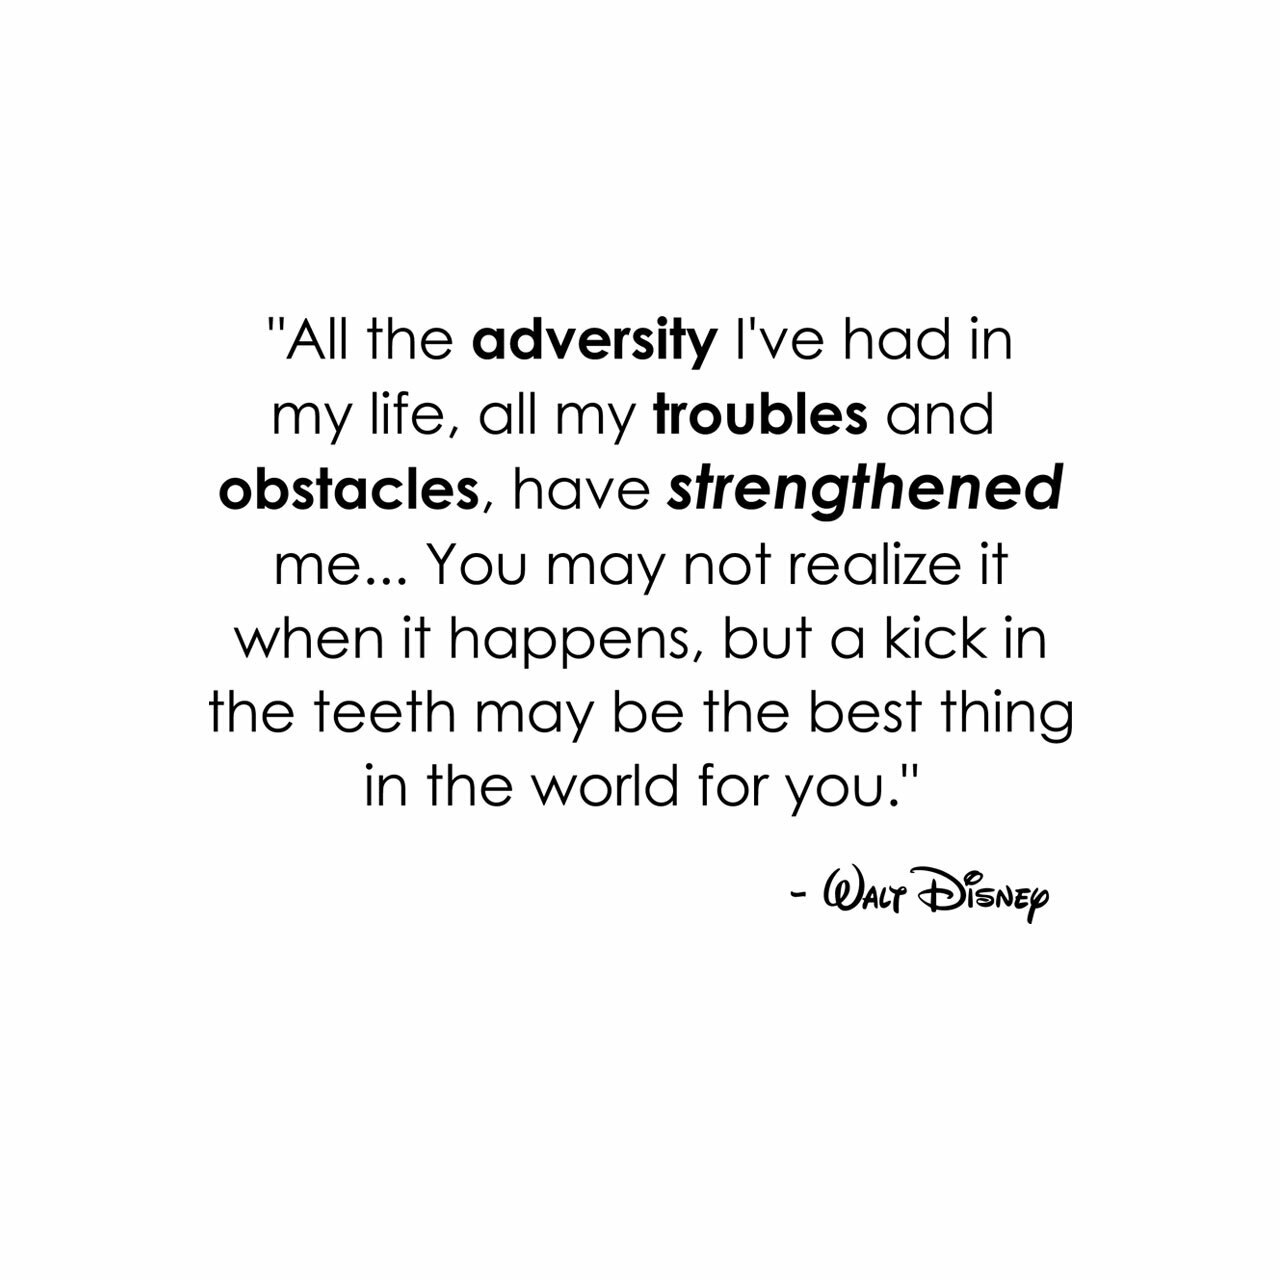 All the adversity I've had in my life, all my troubles and obstacles, have strengthened me...You may not realize it when it happens, but a kick in the teeth may be the best thing in the world for you. -Walt Disney written on multiple lines in black on a white background